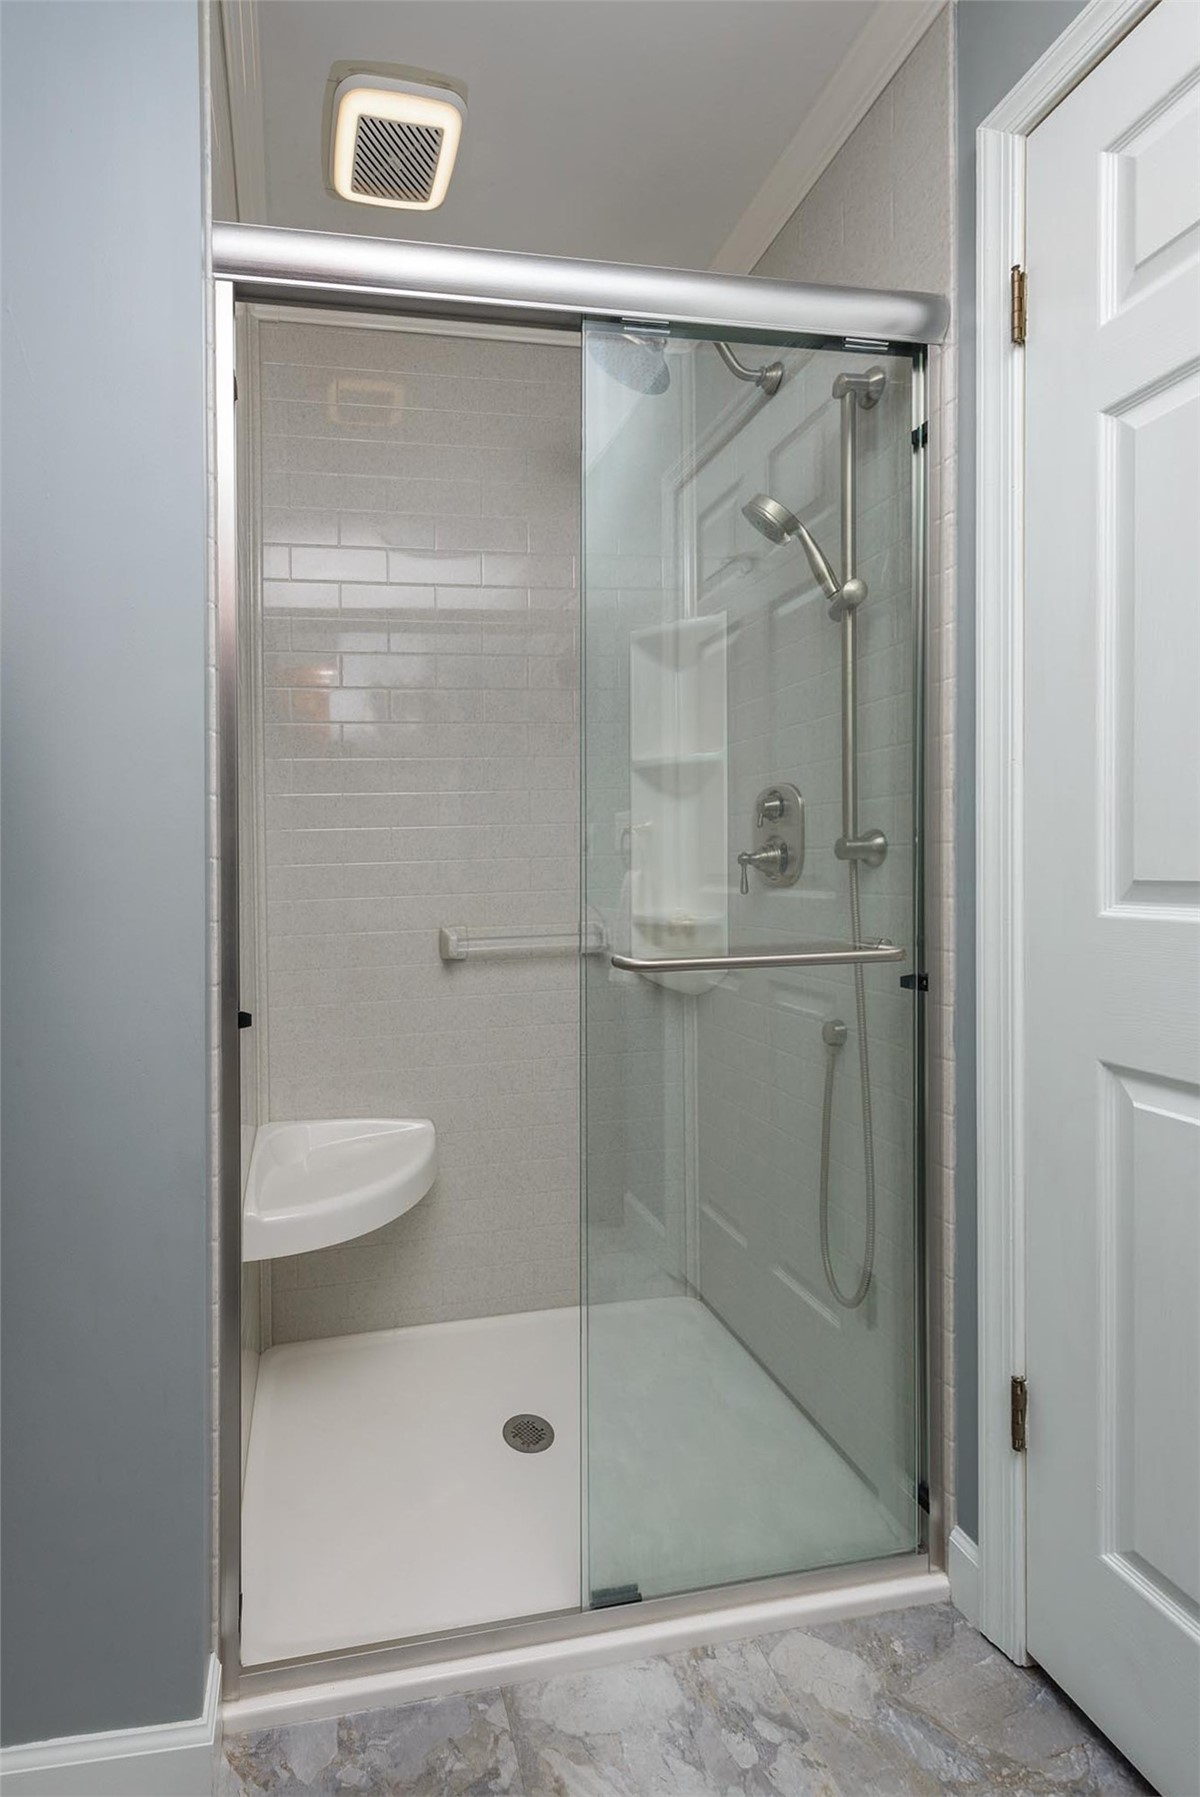 Cincinnati Bathroom Remodeling Remodelling bathroom remodeling in northern kentucky. builders surplus is a